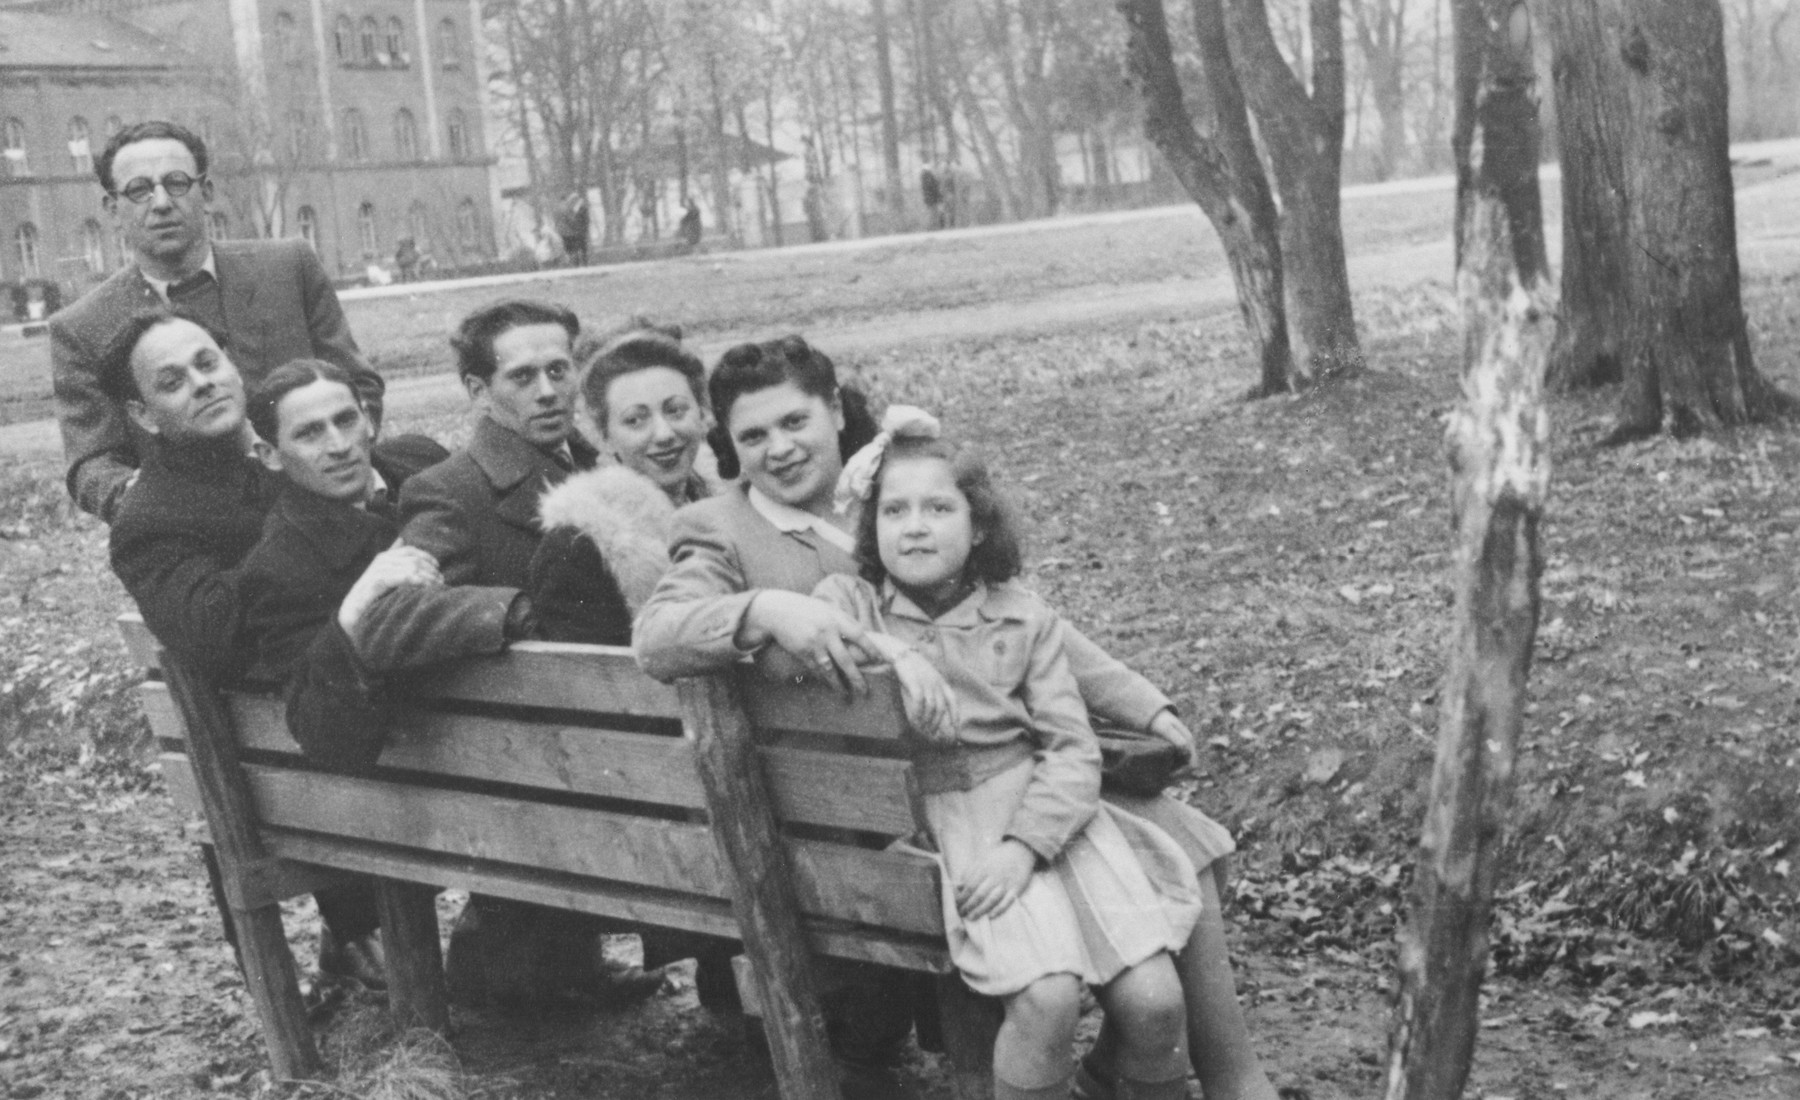 A group of Jewish displaced persons sits on a park bench in Munich.  From left to right are Blumenthal, Pesach Gutmark, David Rogow, Norbert Horowitz, Mrs. Blumenthal and Rita Karpinovitch.